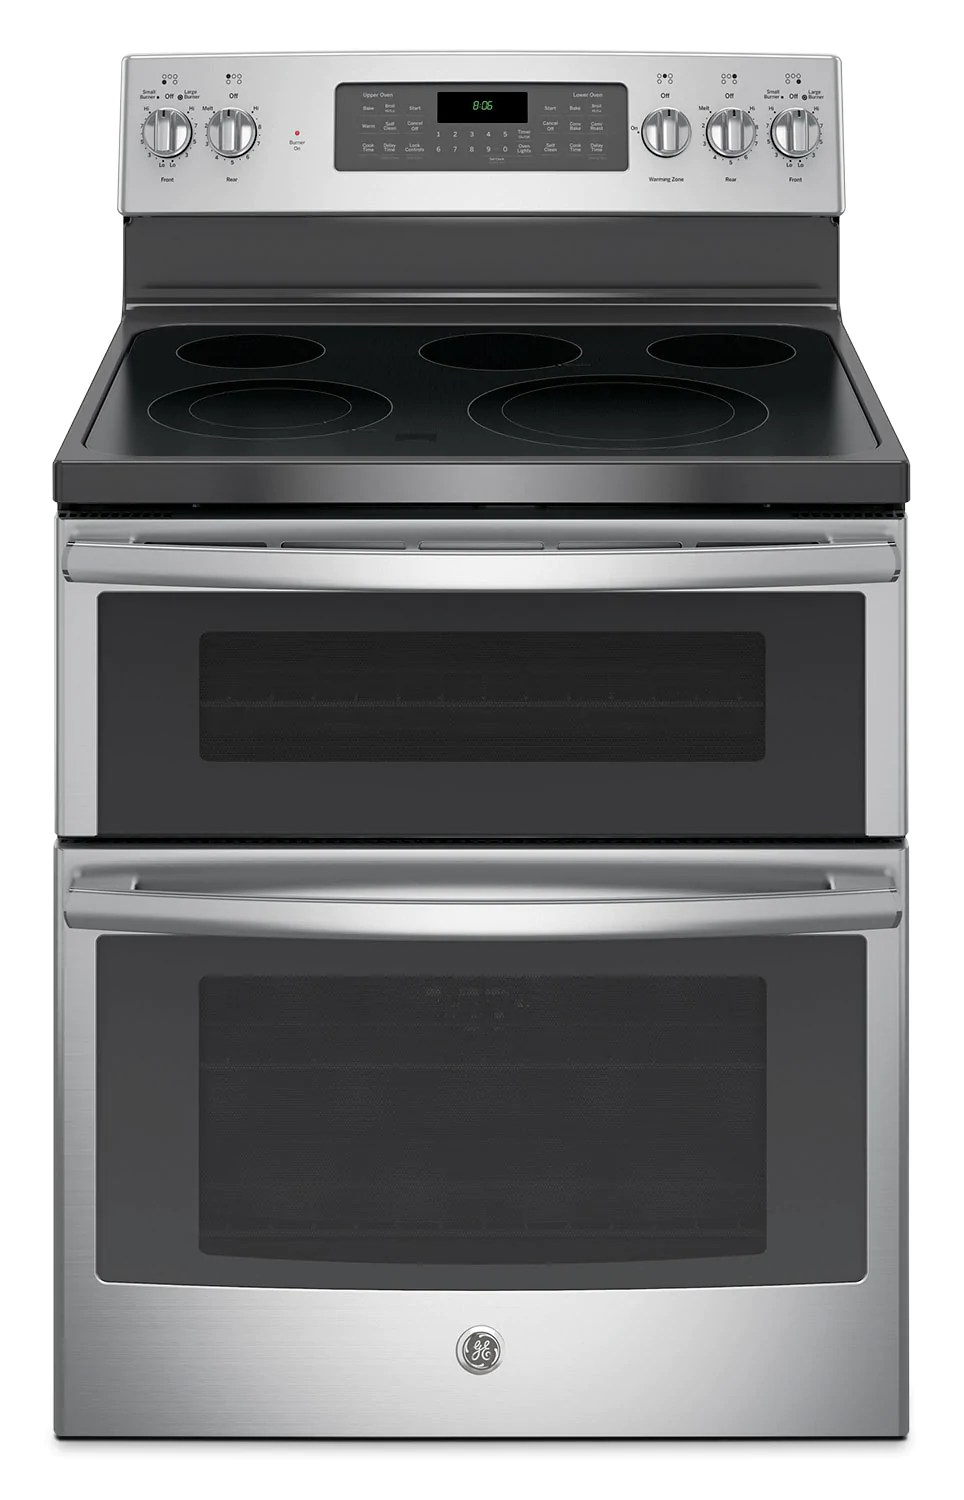 Electric Ovens For Sale Ge 6 6 Cu Ft Freestanding Double Oven Electric Range Jcb865sjss